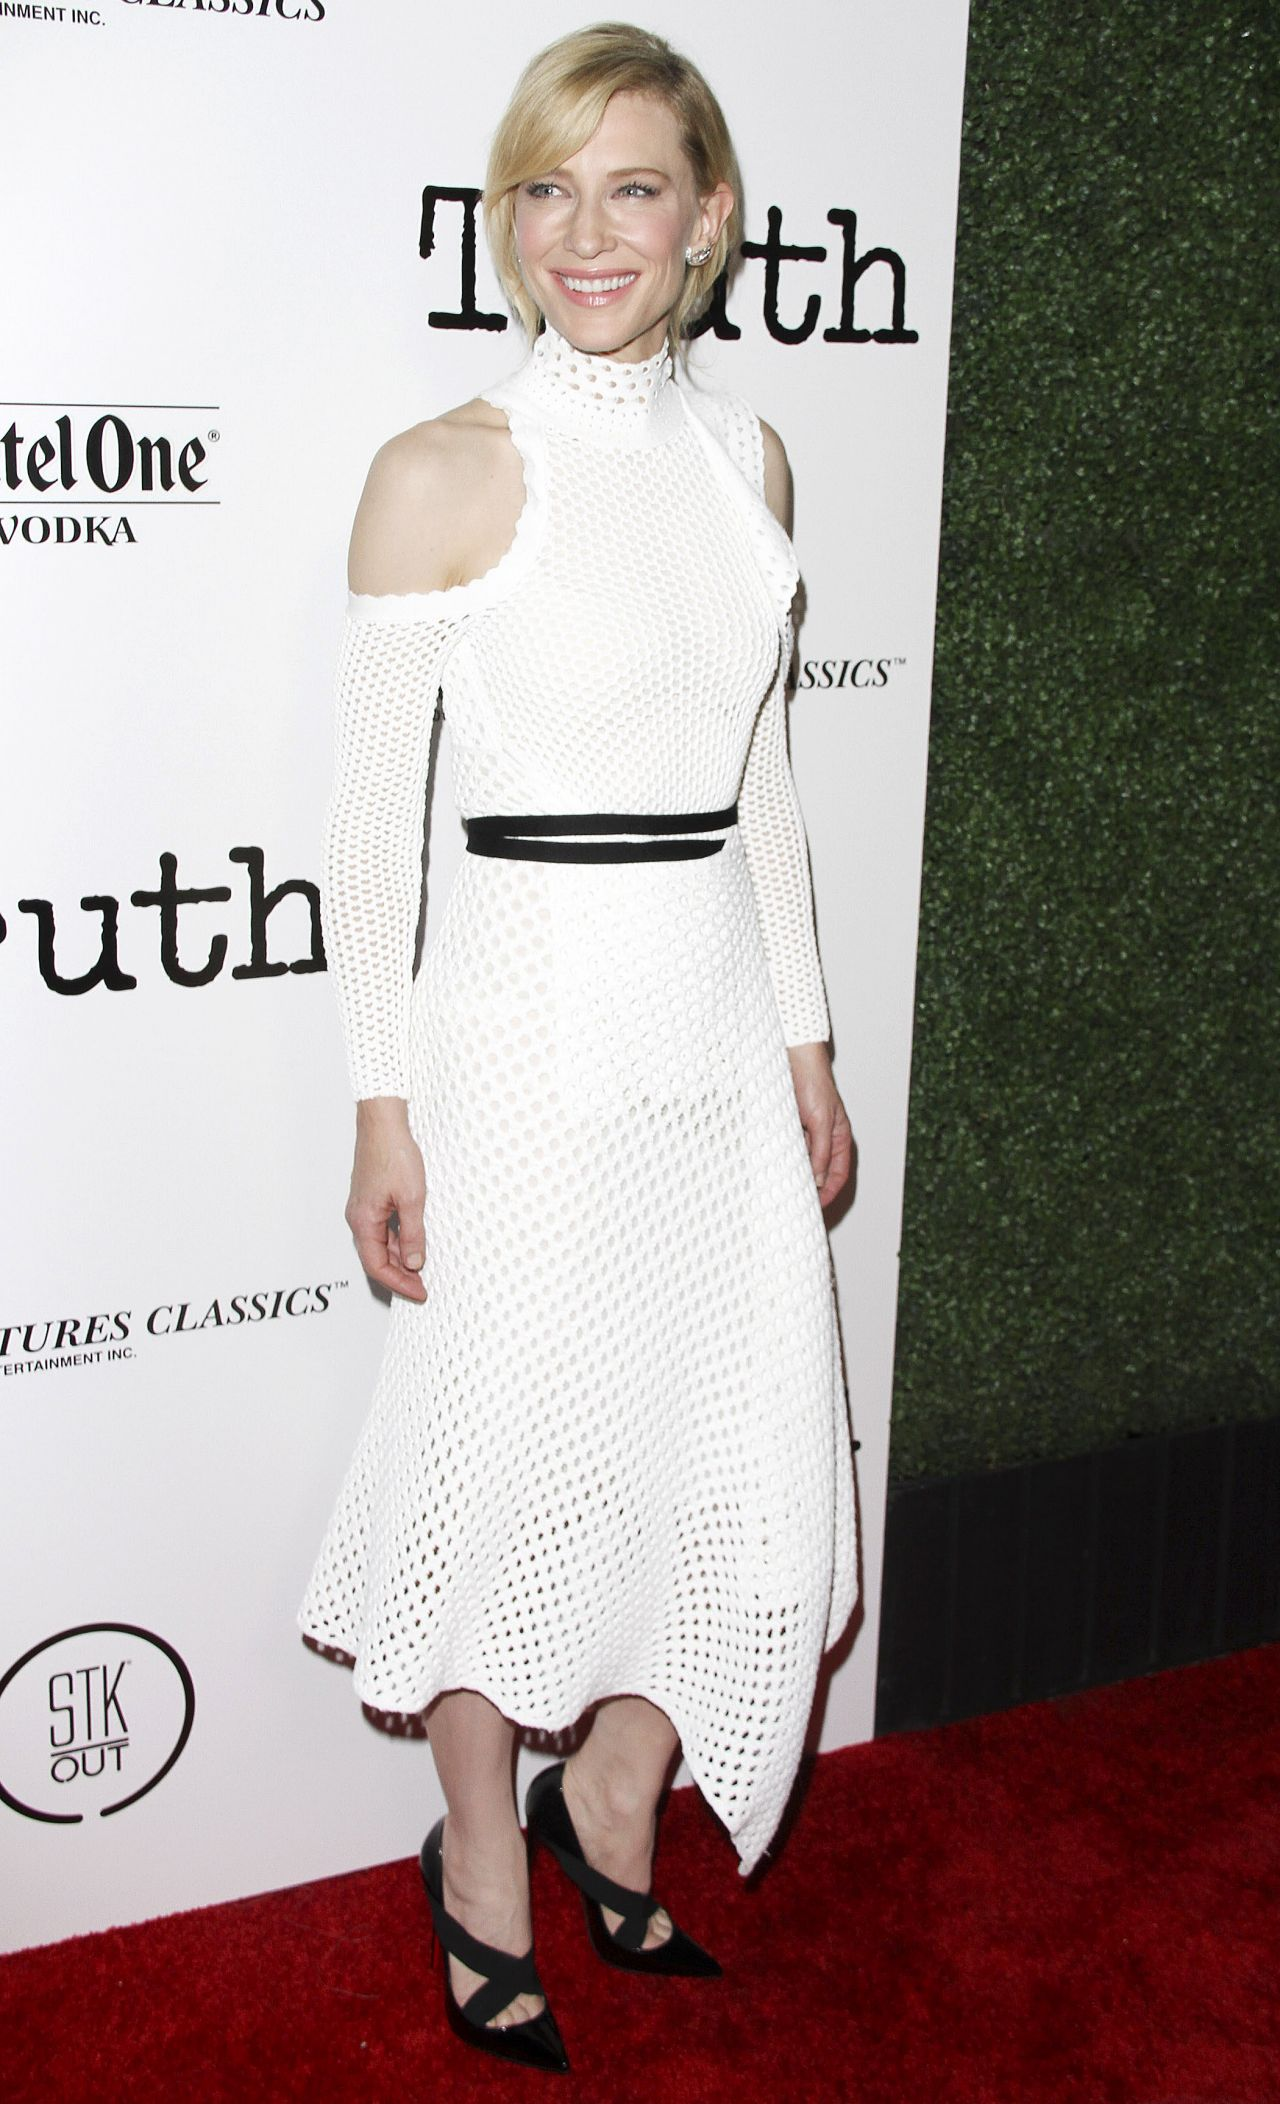 cate-blanchett-industry-screening-of-truth-in-los-angeles_5